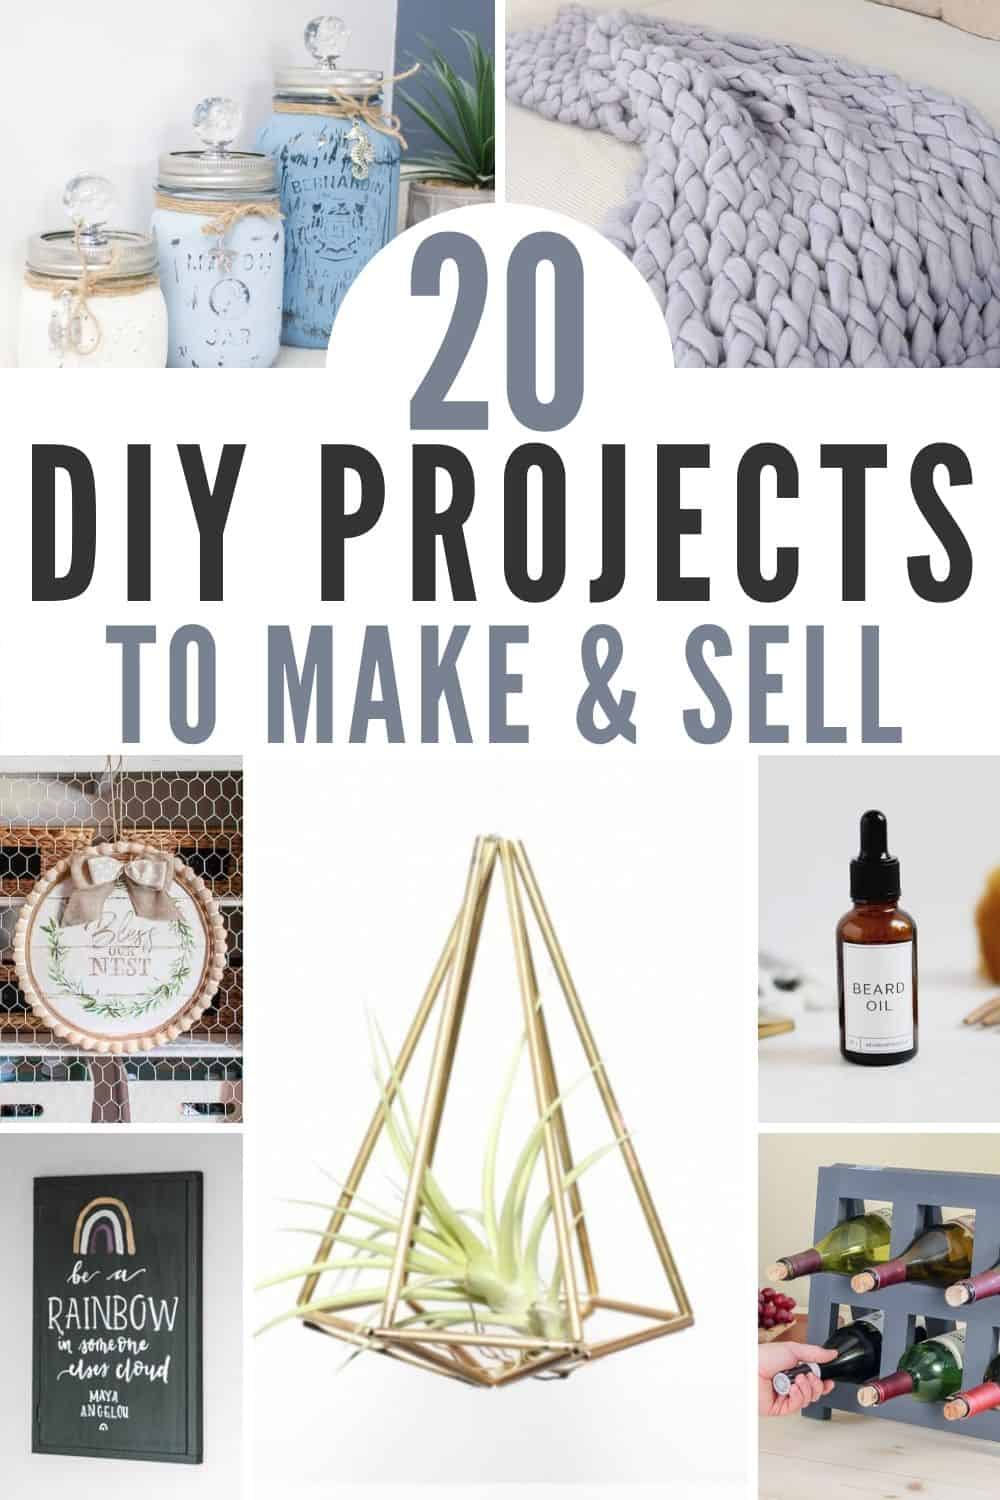 Collage of images showing crafts to make and sell and includes the test 20 DIY Projects to Make and Sell